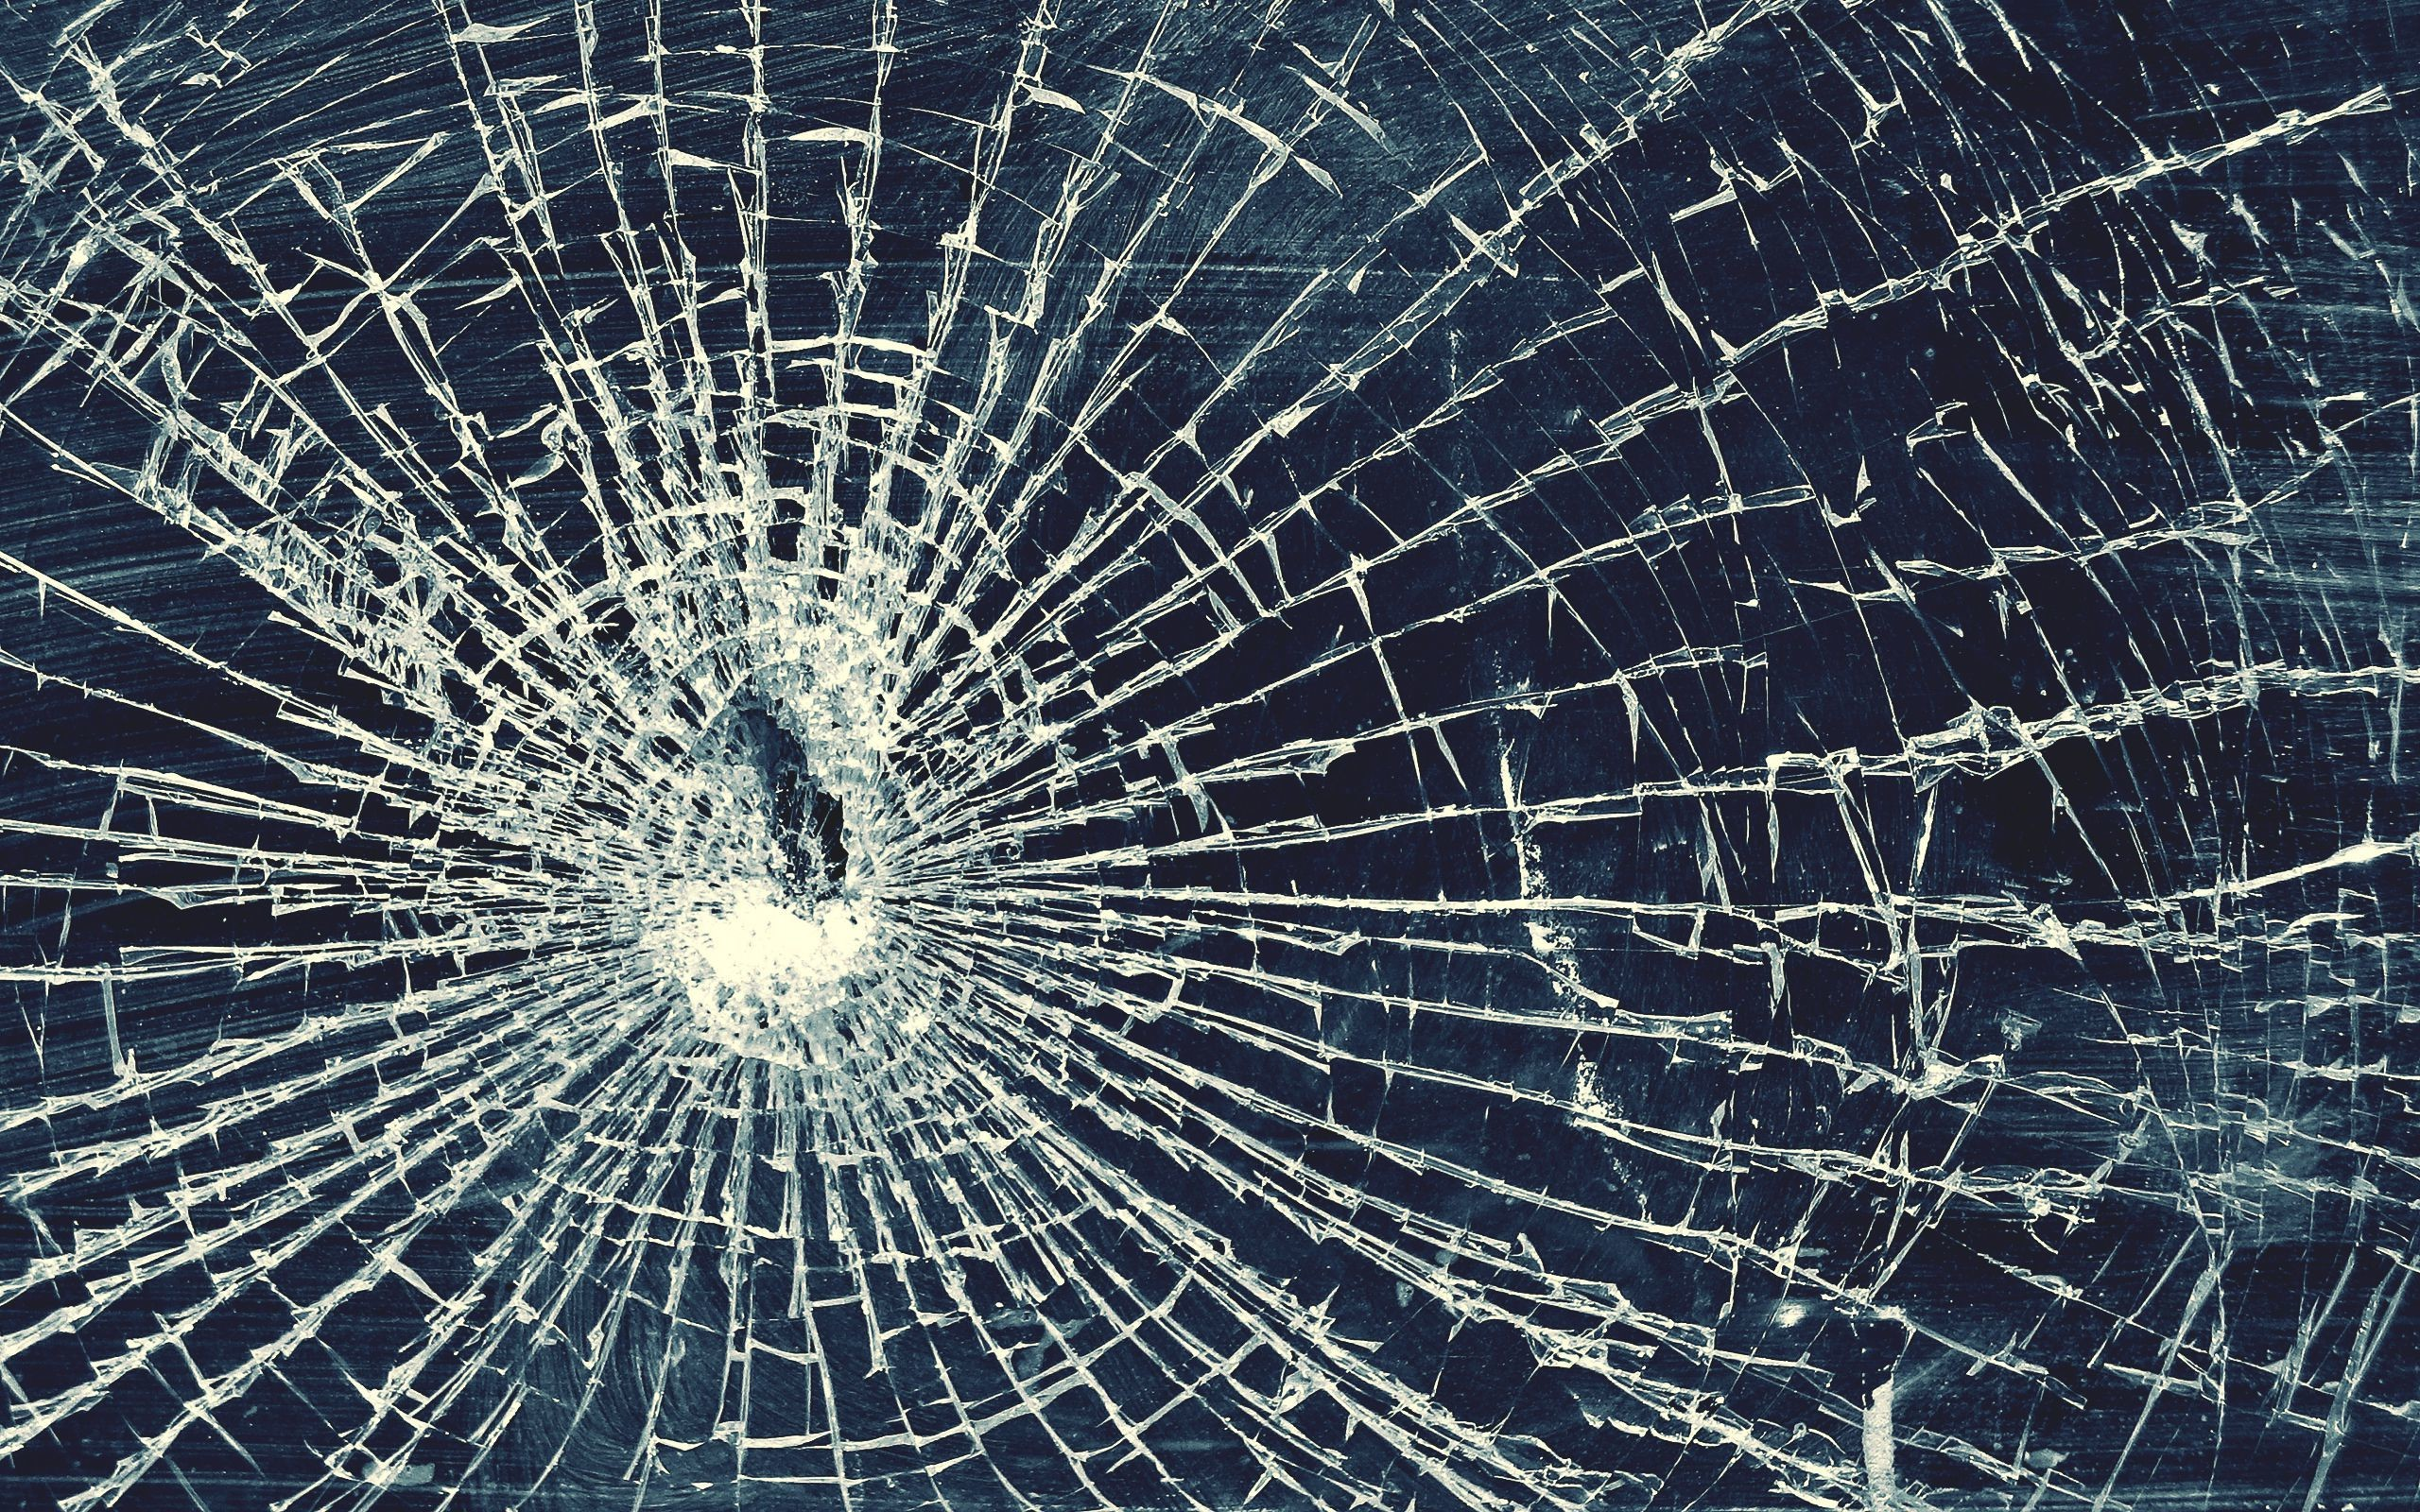 Cracked screen wallpaper 64 images 2560x1600 crackeed glass wallpaper hd voltagebd Gallery